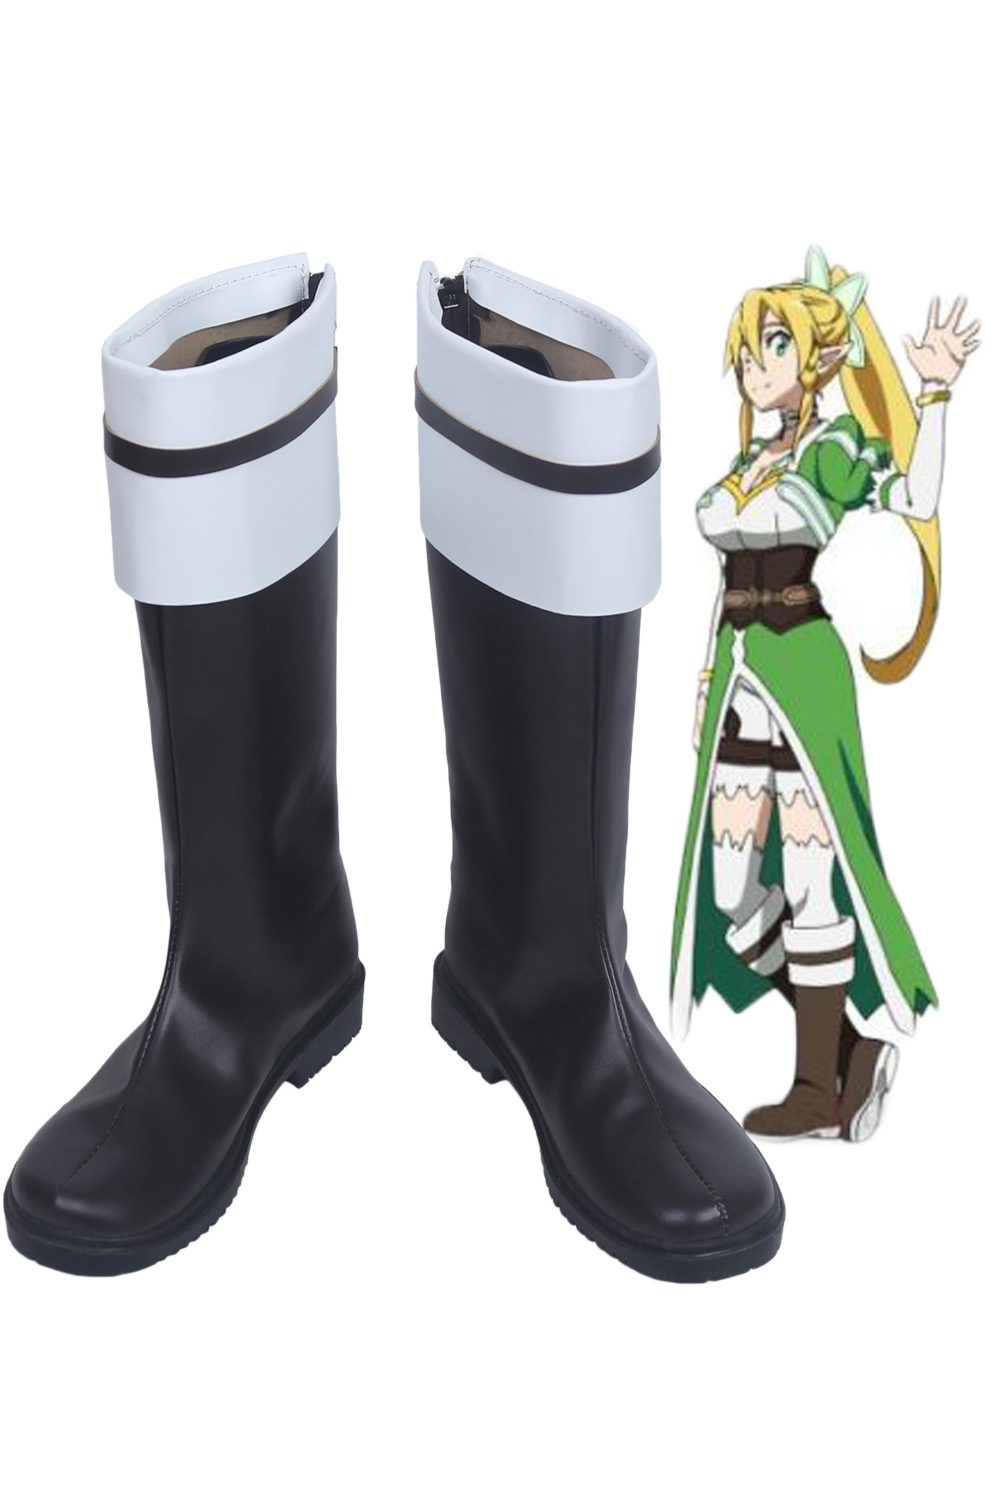 Leafa Shoes Cosplay Sword Art Online Kirigaya Suguha Cosplay Boots Shoes Custom Made Any Size